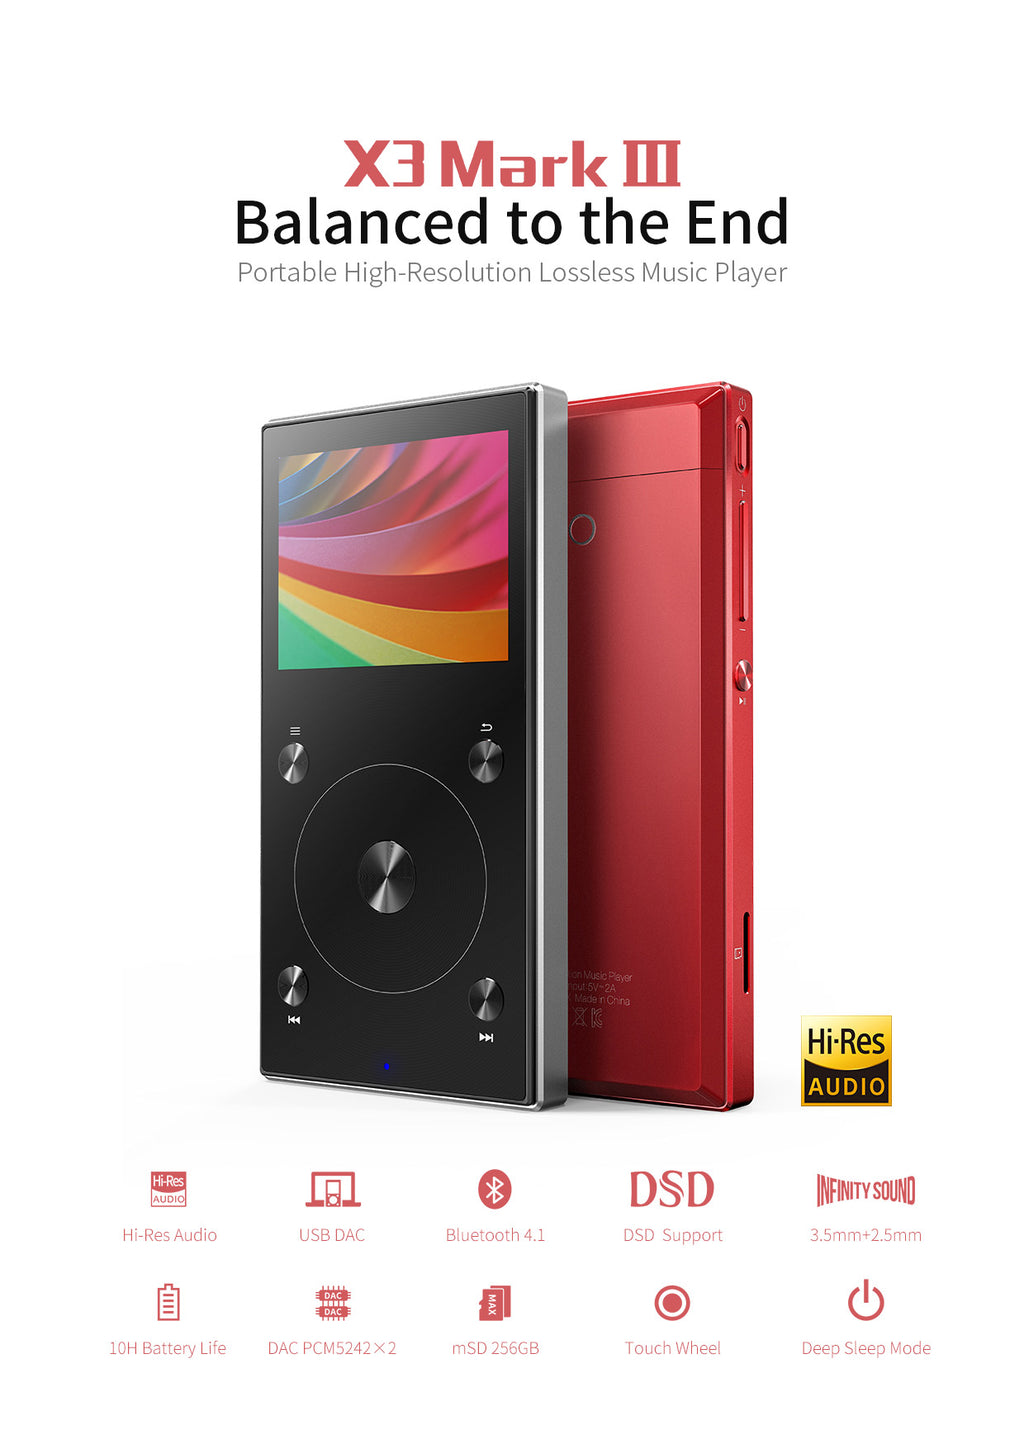 FiiO X3 Mark III Digital Audio Player with Bluetooth 4.1